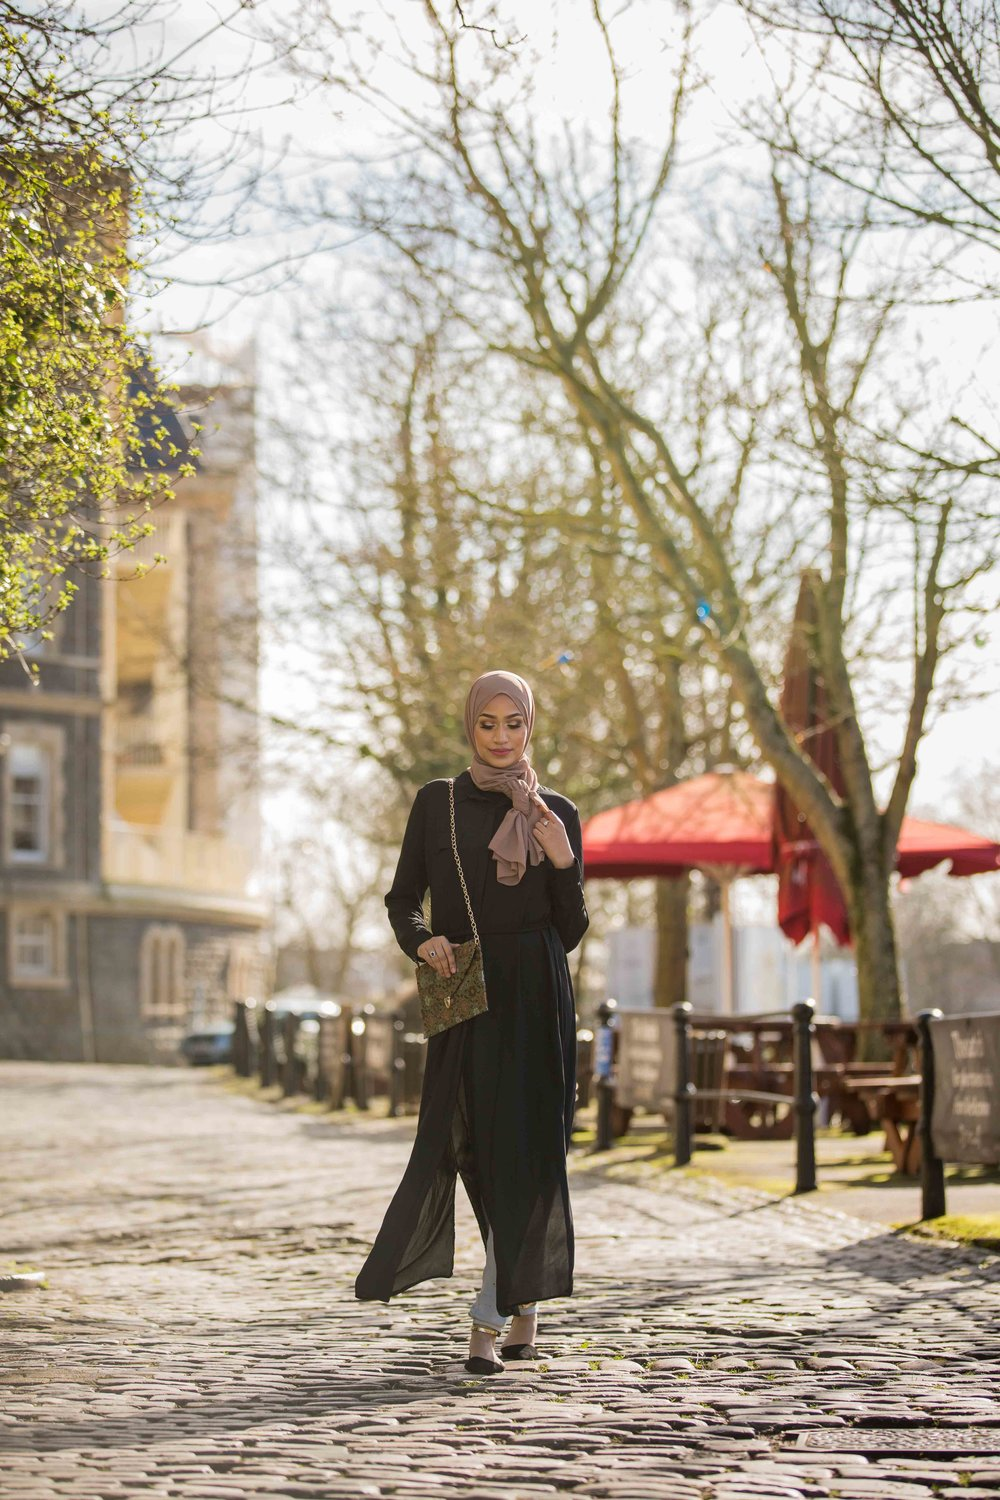 modest-street-aisha-rahman-fashion-photography-london-bristol-natalia-smith-photography-abaya-9.jpg